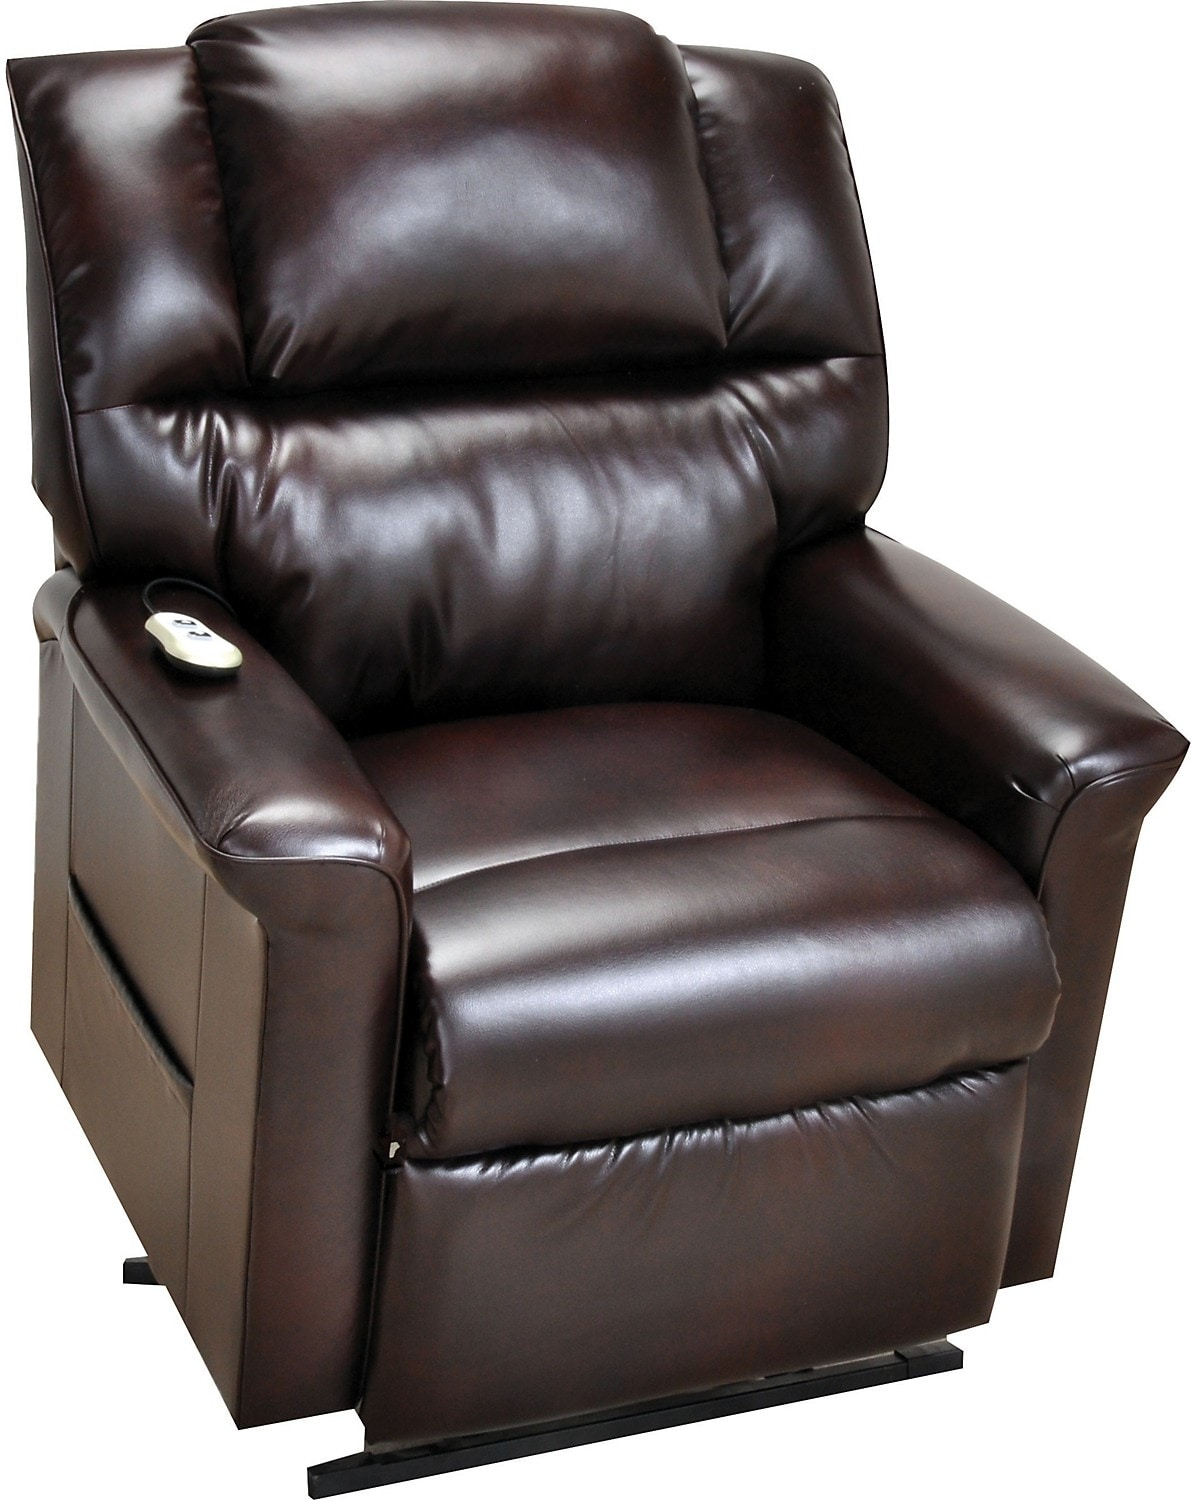 Lift Chairs Recliners Bonded Leather 3 Position Power Lift Recliner Brown